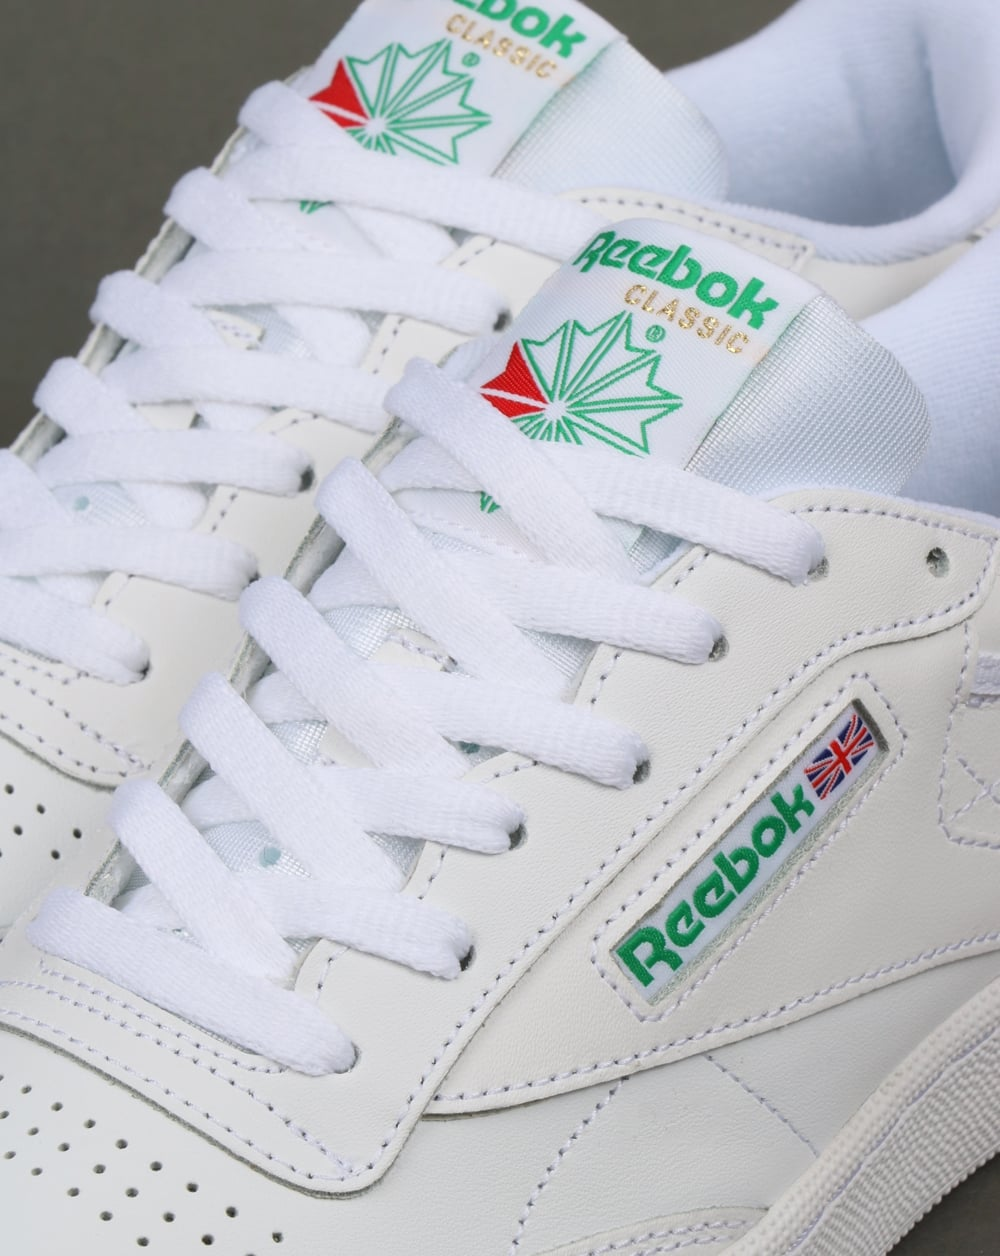 949bb22780f2 Reebok Club C 85 Trainers in White and Green